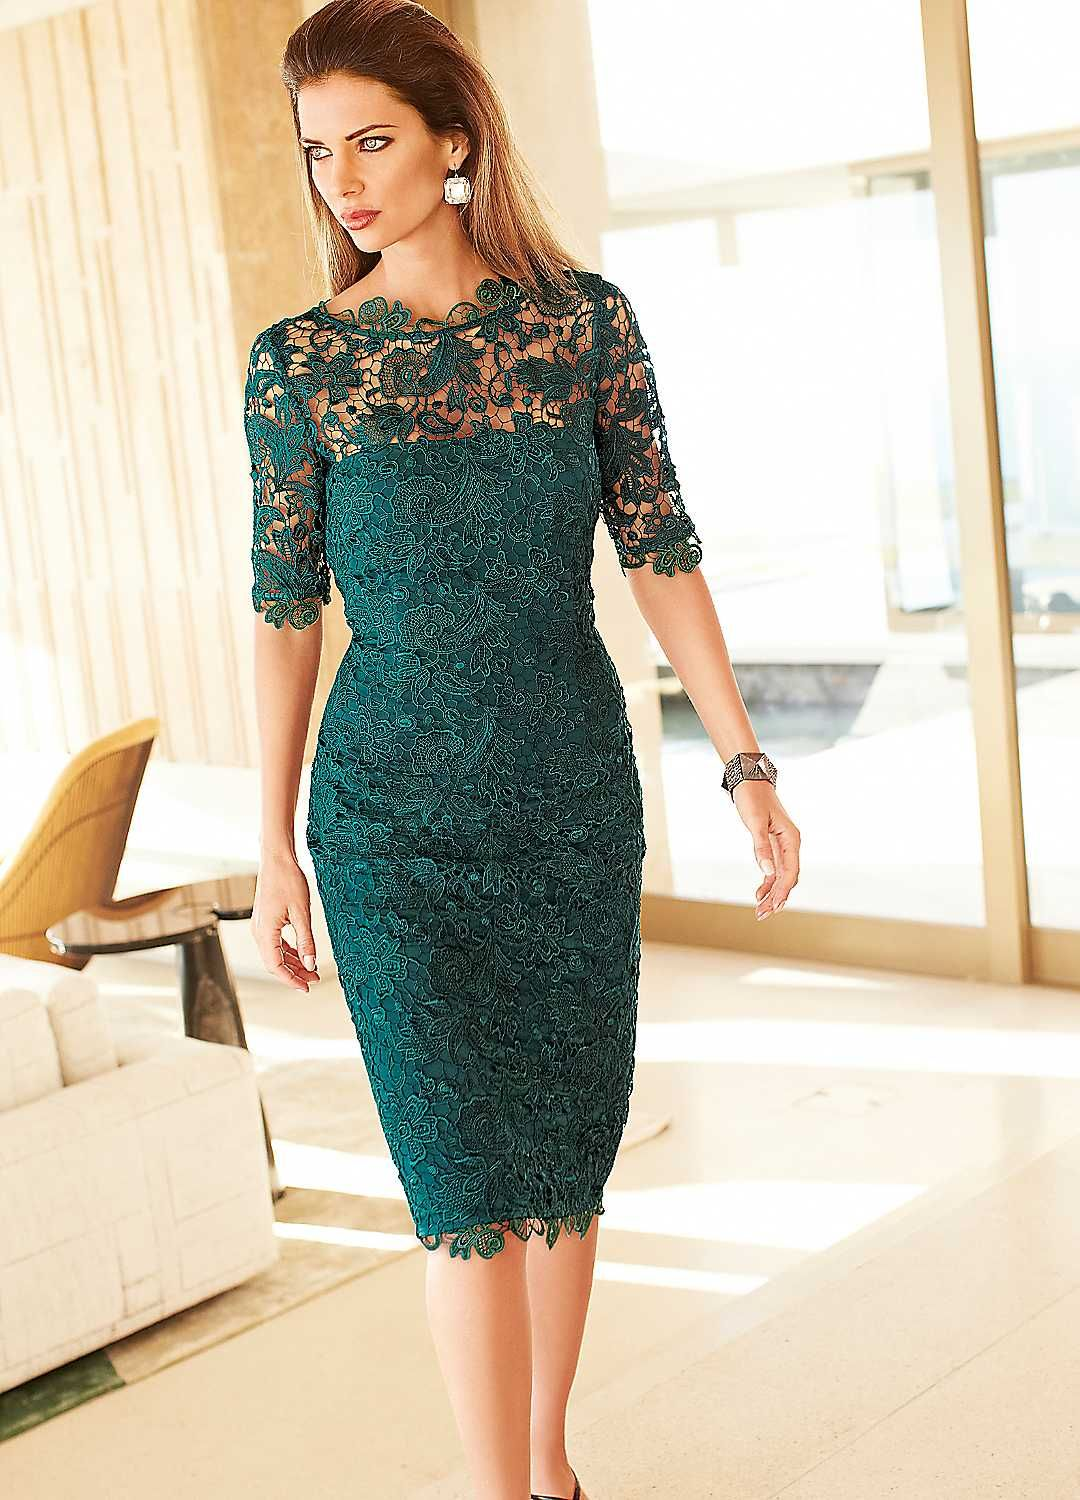 Exquisite Lace Dress Κοντά Φορέματα c8c8e065c70